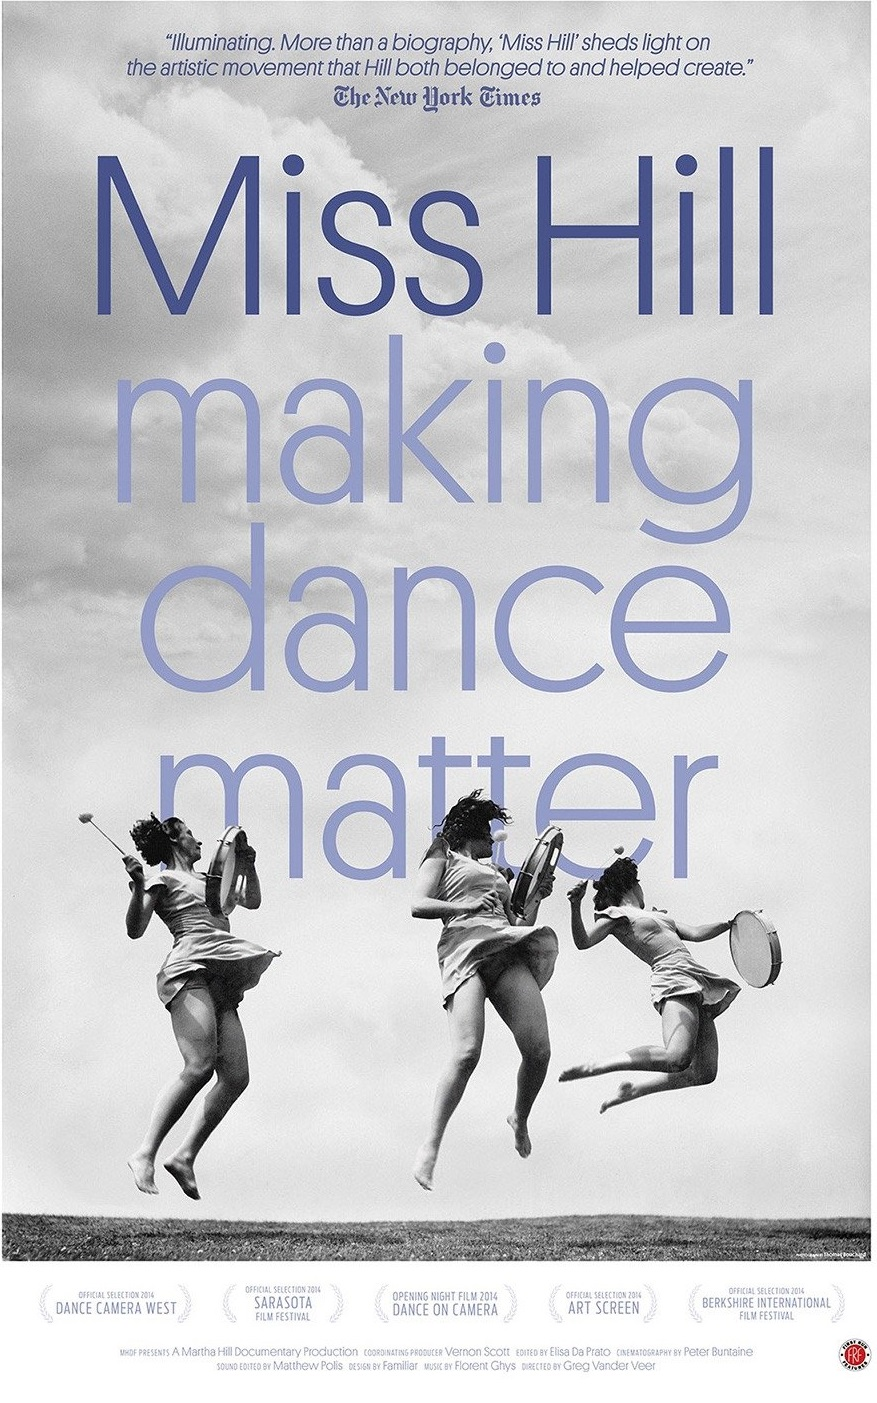 Miss Hill making dance matter